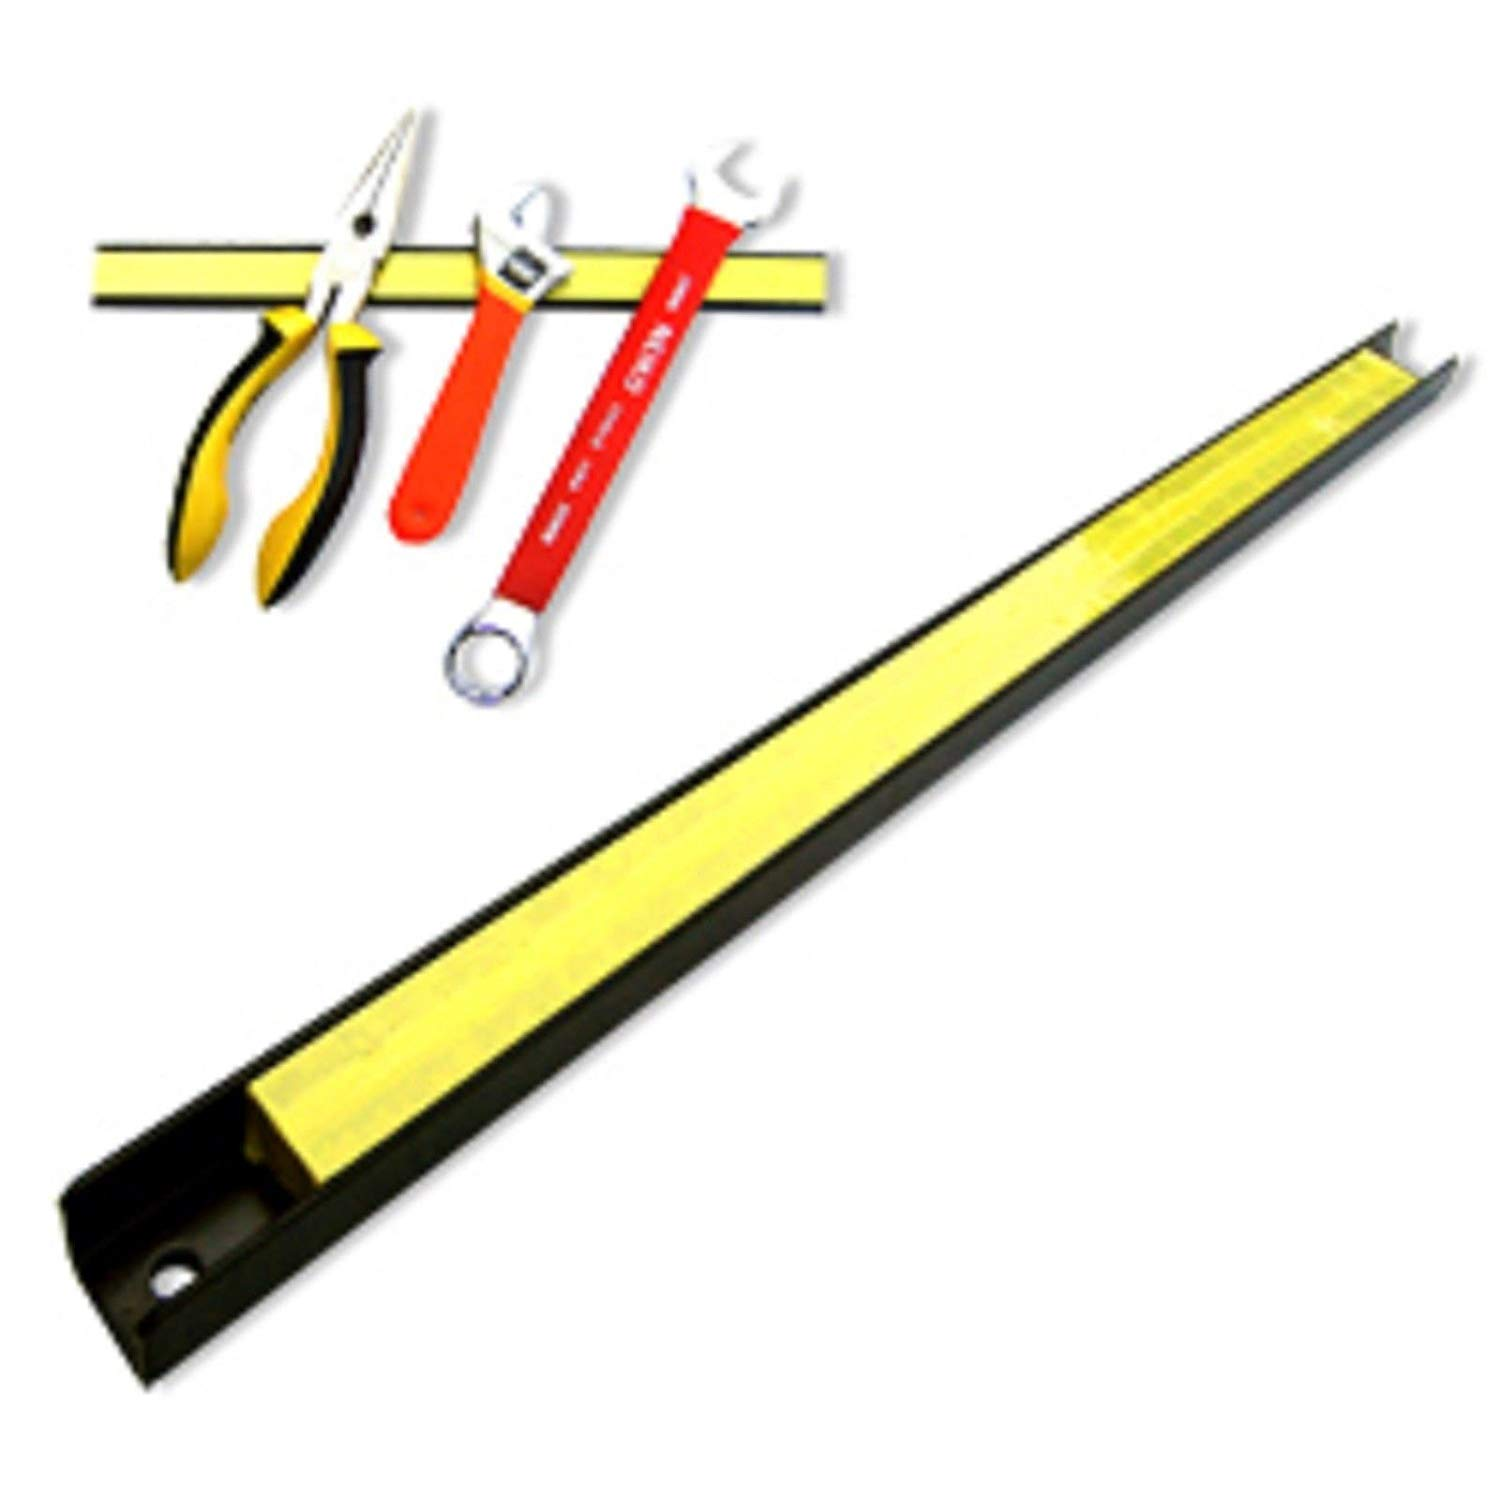 "ESKALEX>>(5) 18"" Magnetic Tool Holder Bars Magnet Mechanic Shop And 1"" WidePowder Coating30lb Capacity each Quantity: 5"